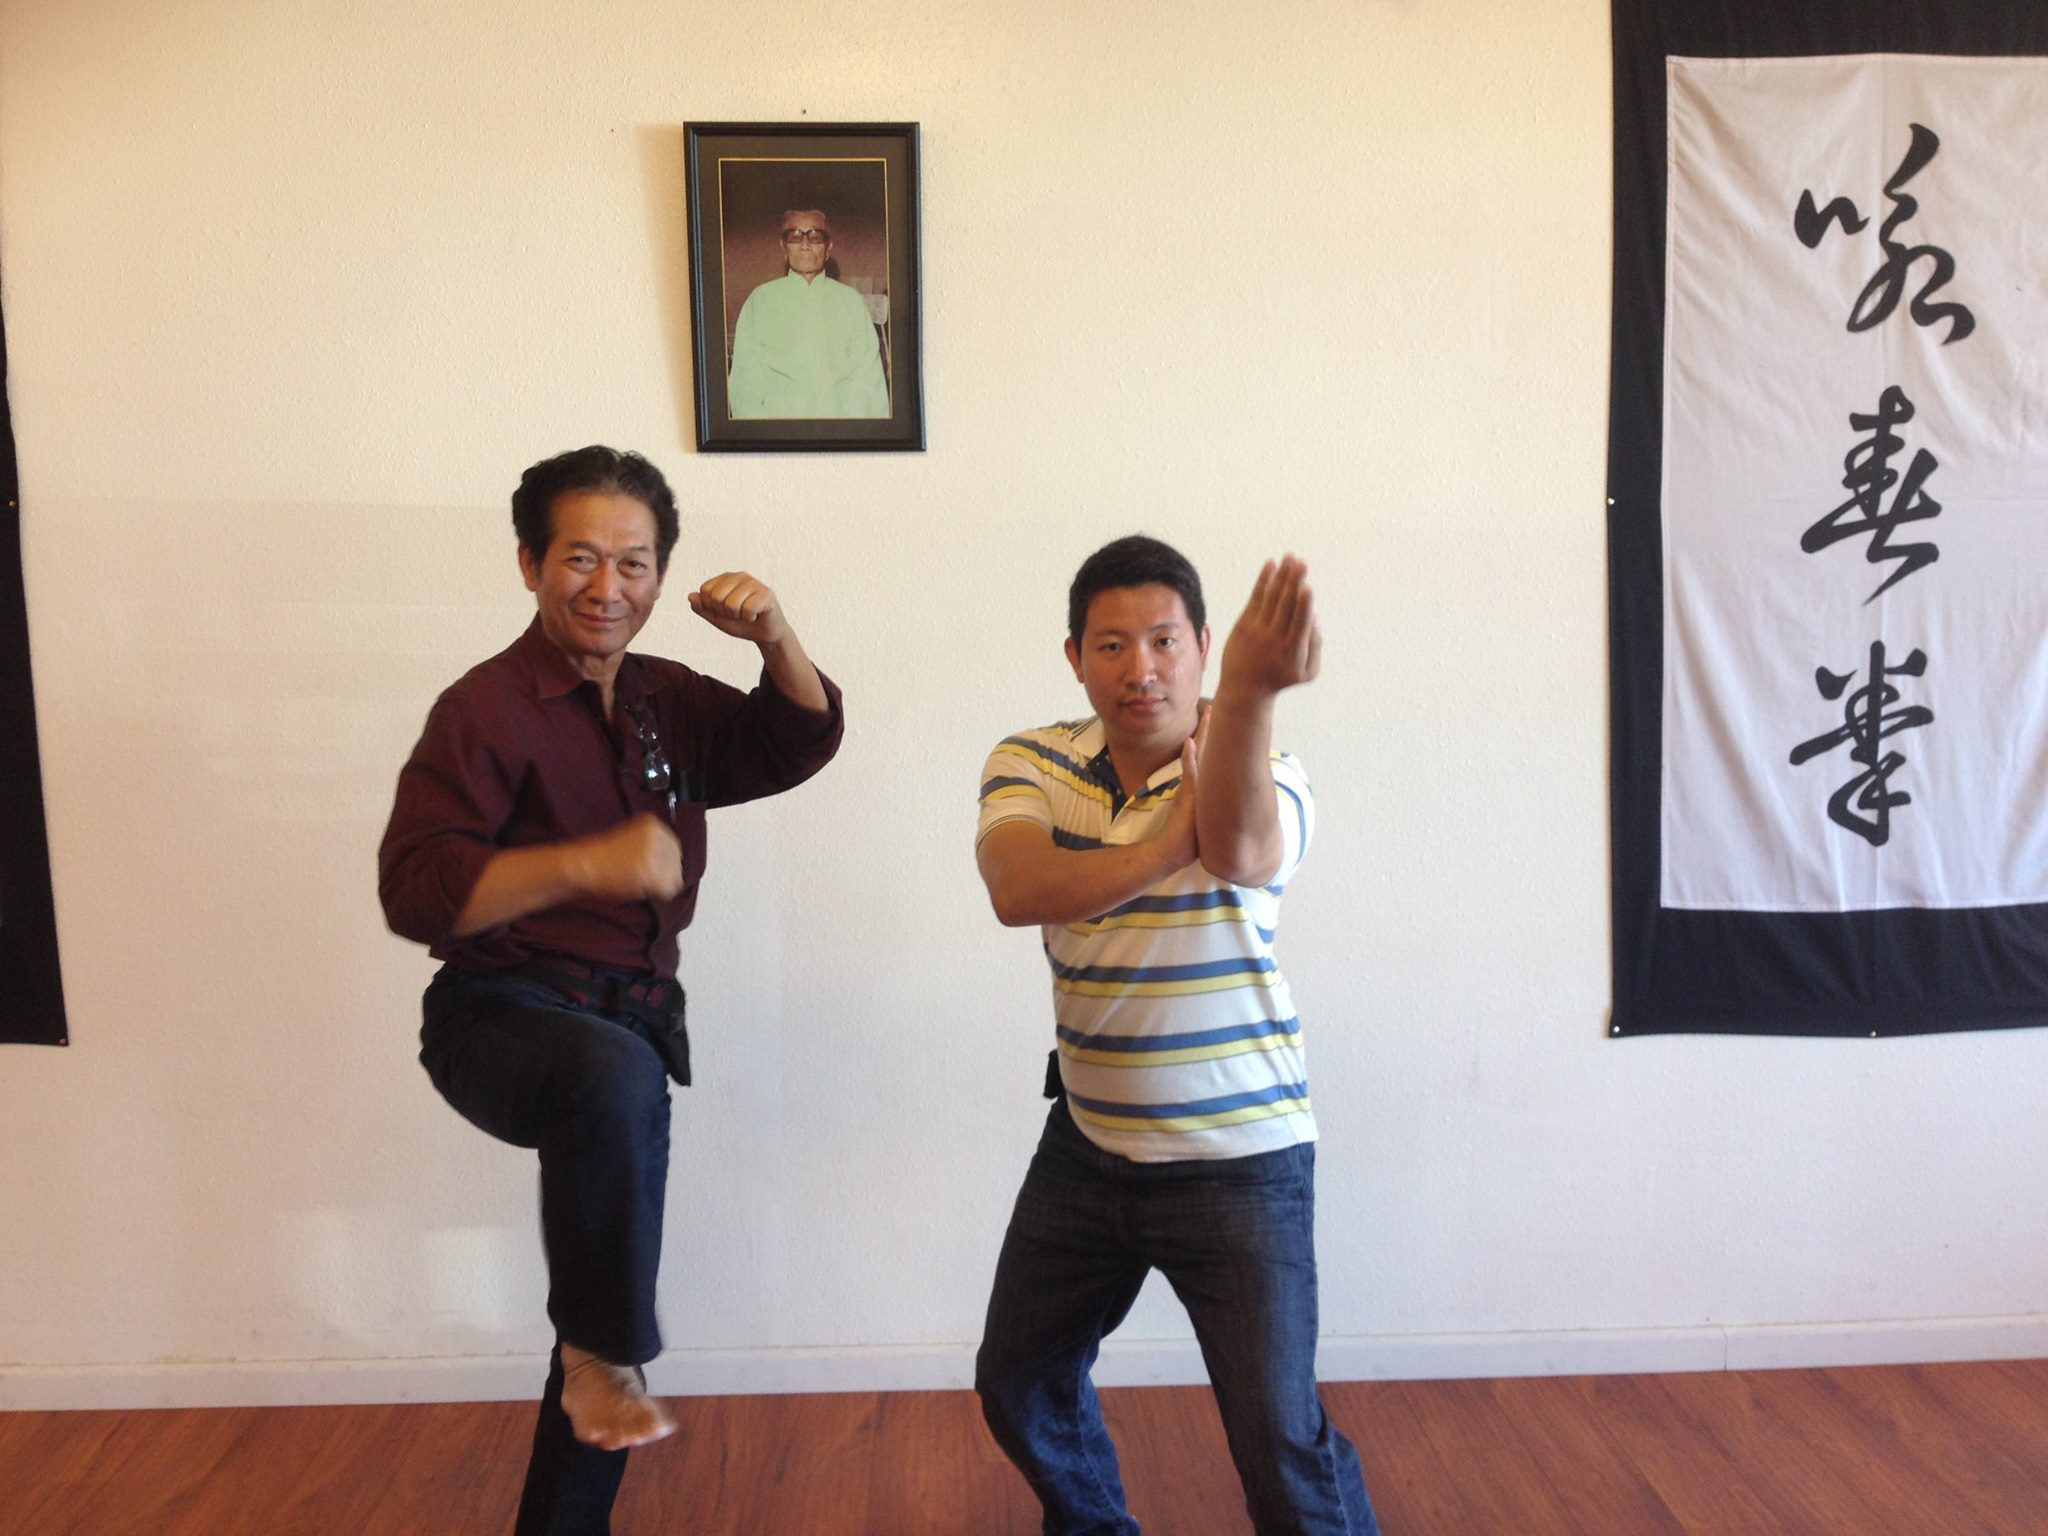 Bokator meets black flag wing chun